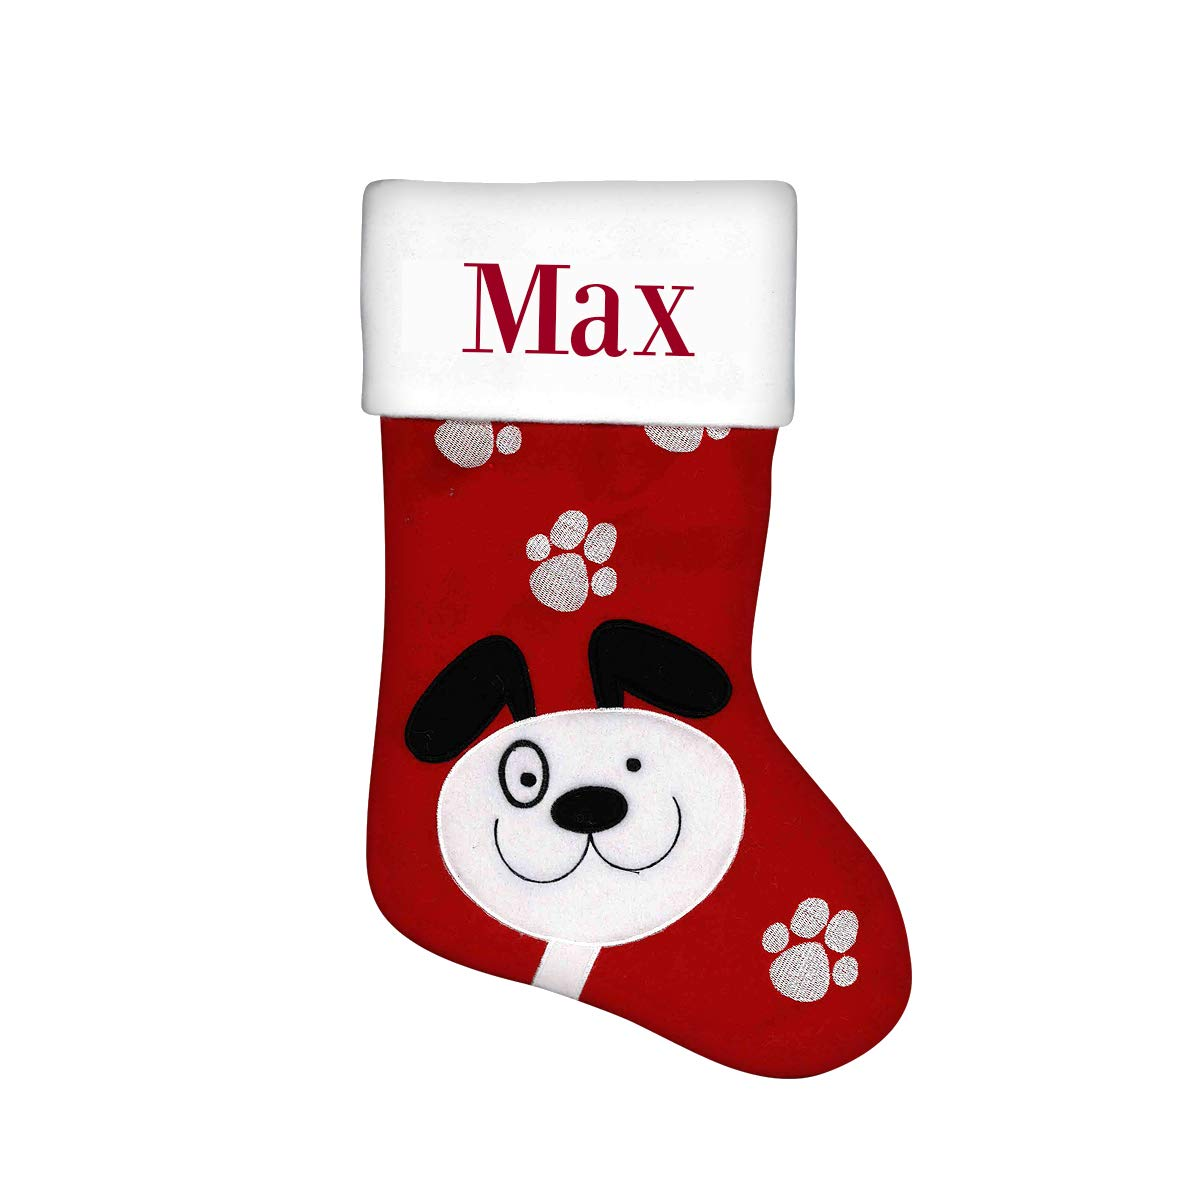 Dinkleboo Personalized Christmas Stockings Festive Holiday Designs Are Great For Kids Adults And Pets Too 15 3 4 X 7 7 8 Cat